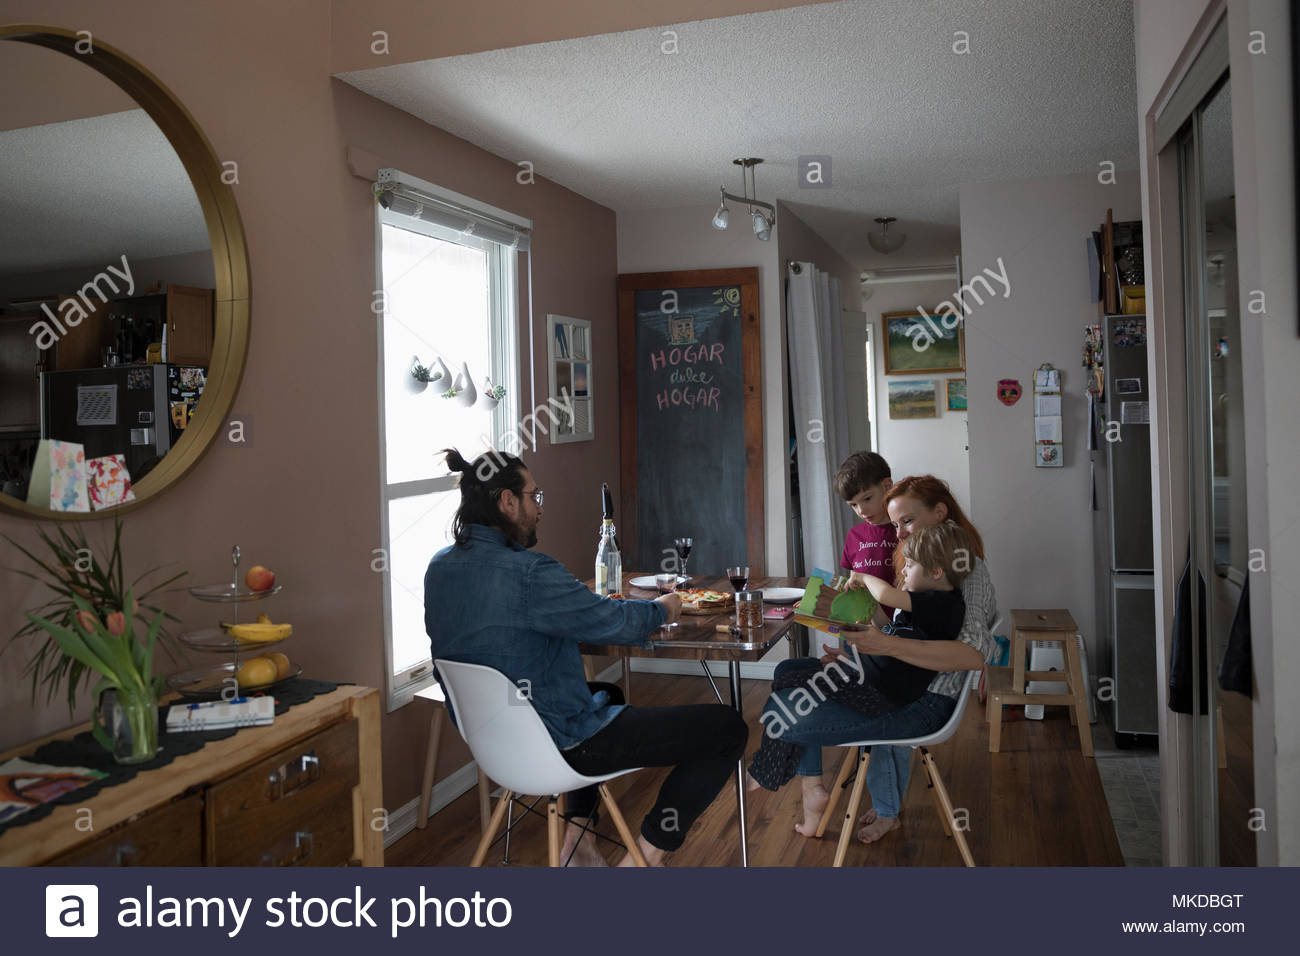 Family eating dinner at dining table - Stock Image